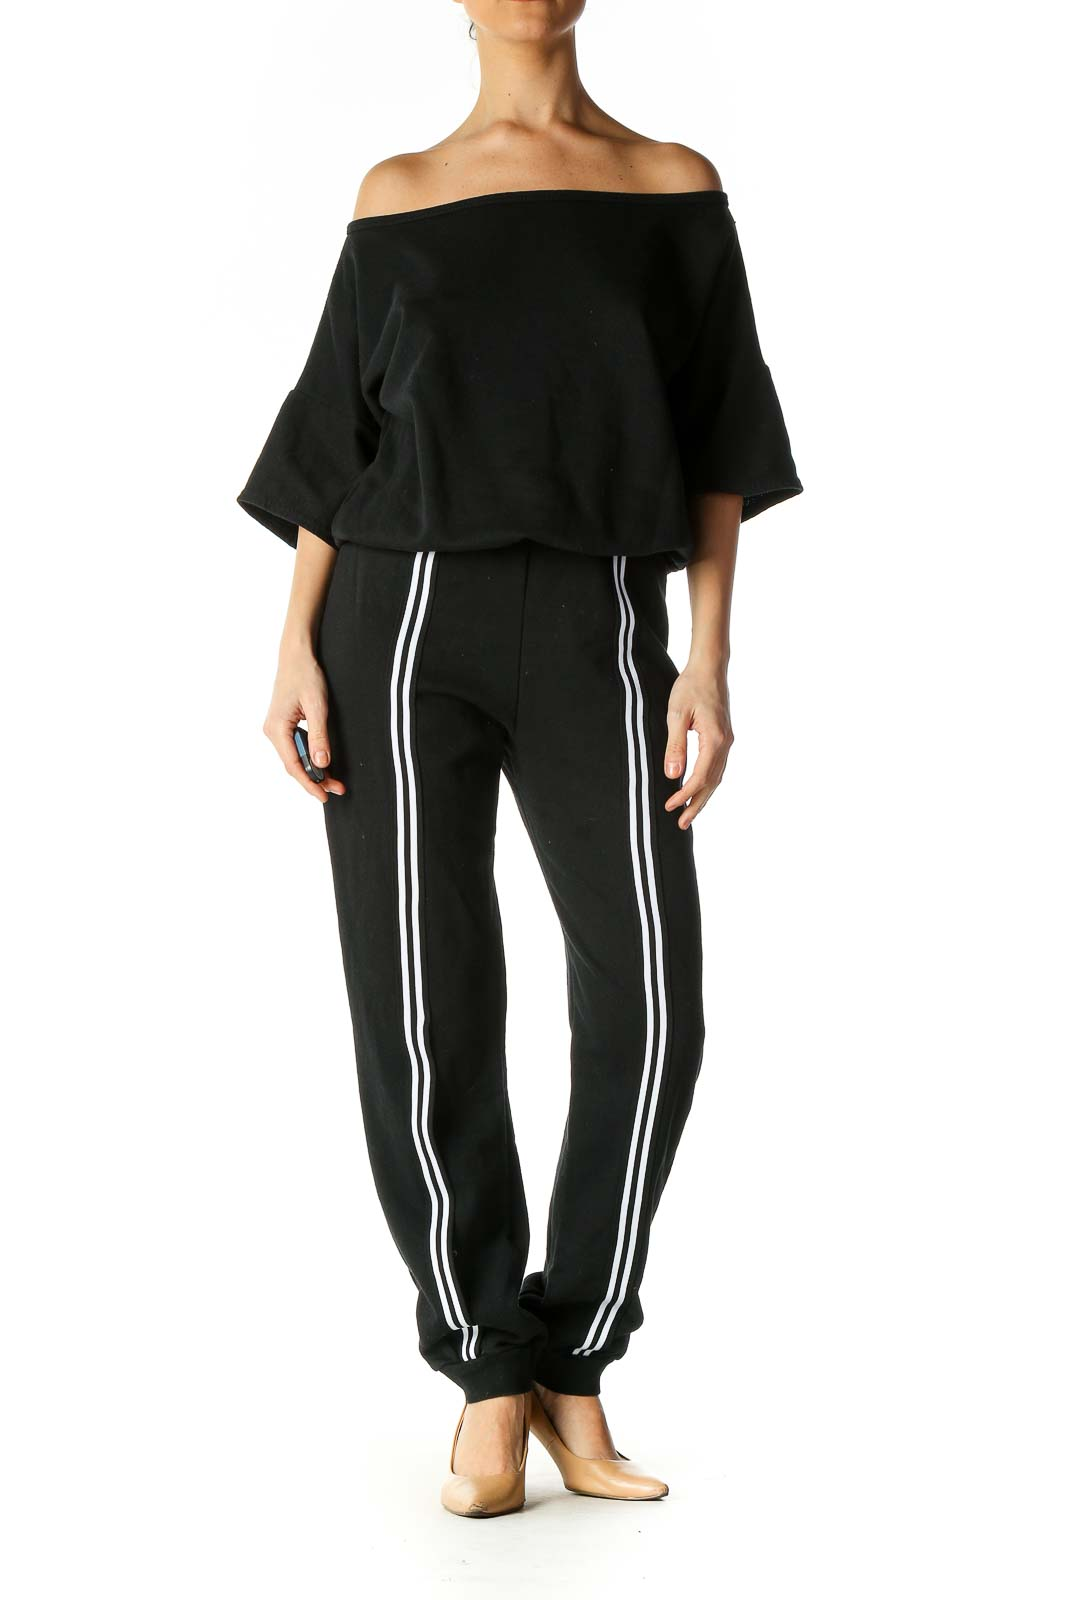 Black Solid Casual Jumpsuit Front